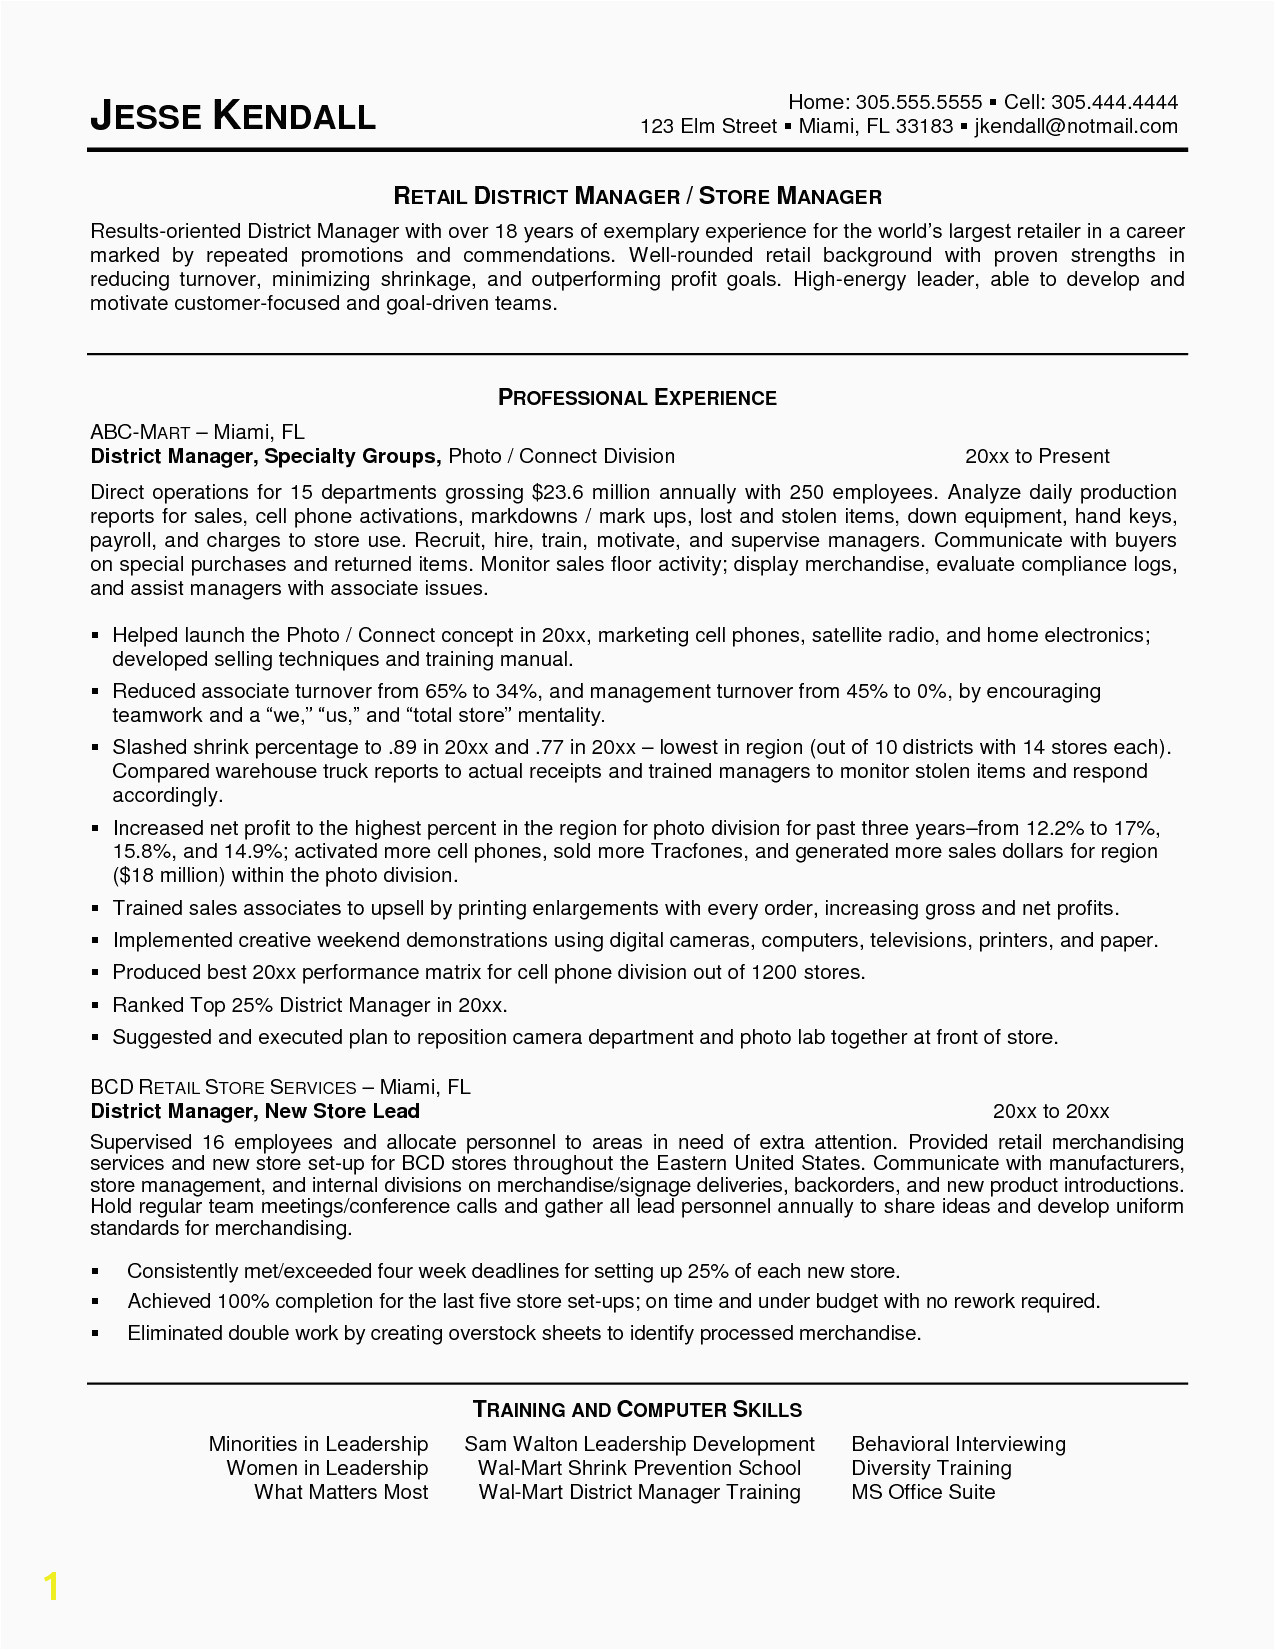 Free Newspaper Template Google Docs Awesome Resume Template Docs Resume Fresh Resume Template Resume Template 0d